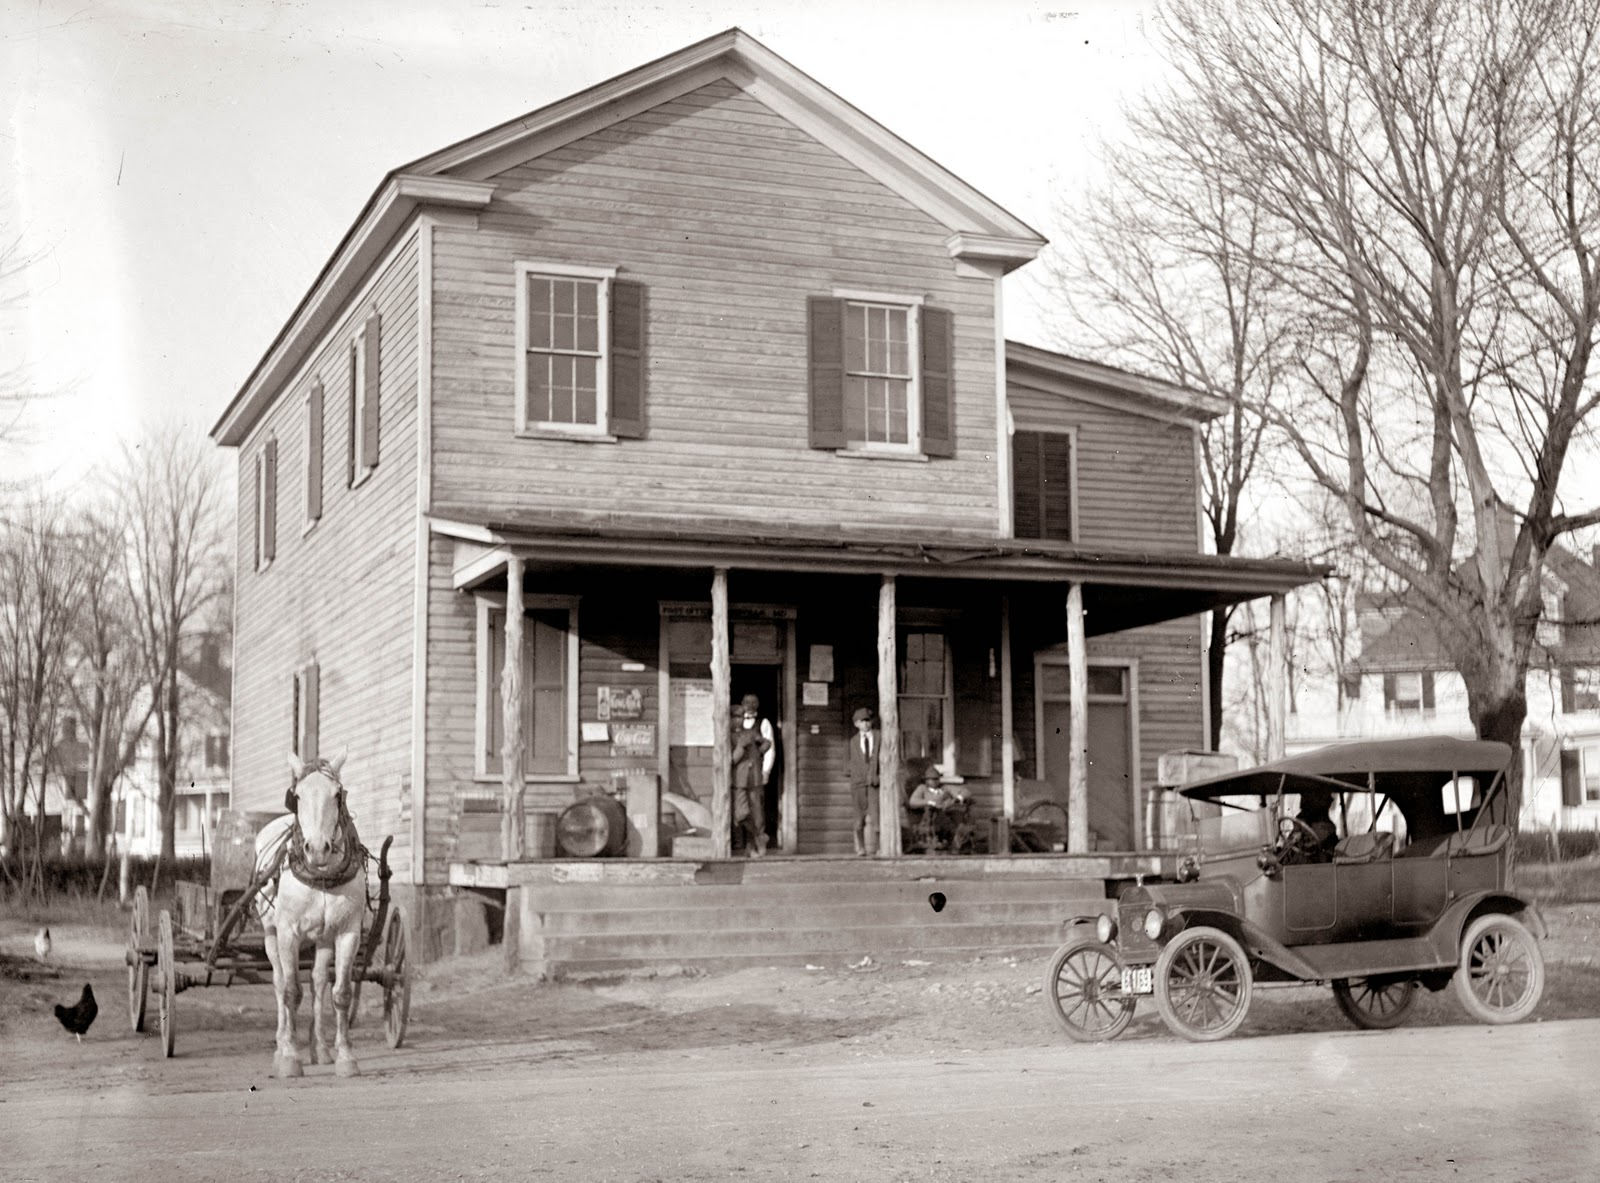 old general store front - photo #11